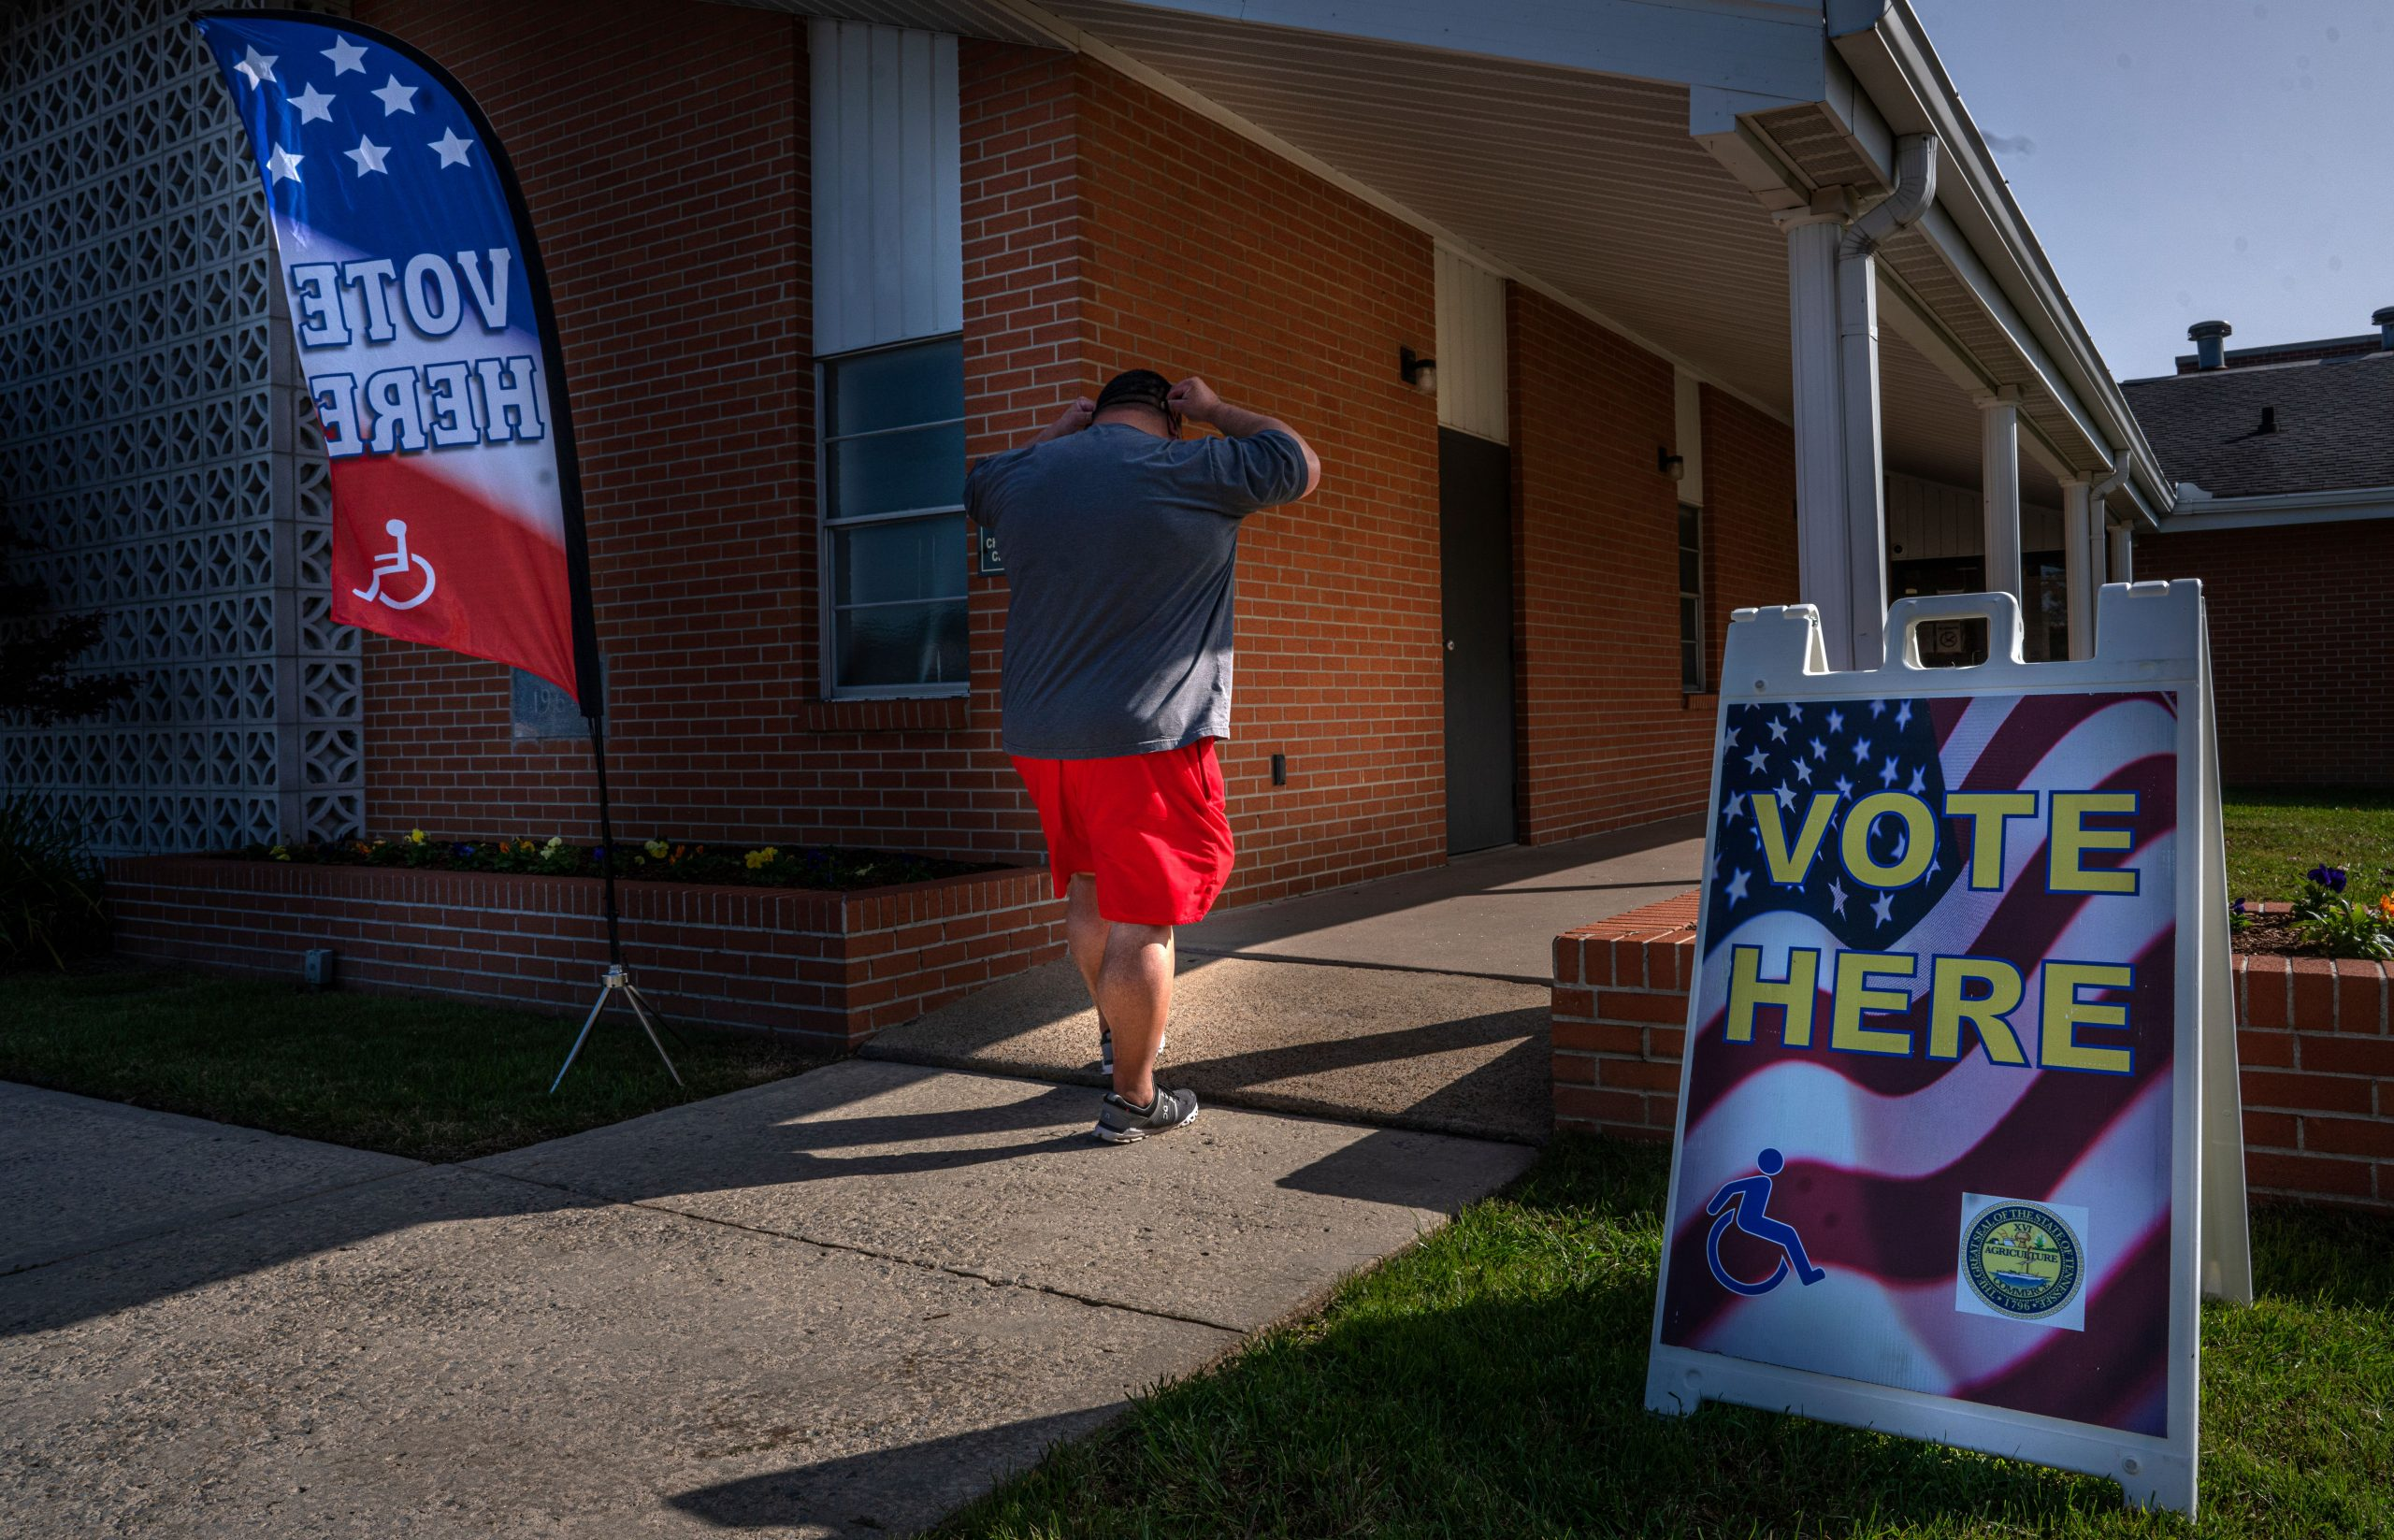 A voter enters a polling site in Coffee County, Tennessee. (Photo: John Partipilo)